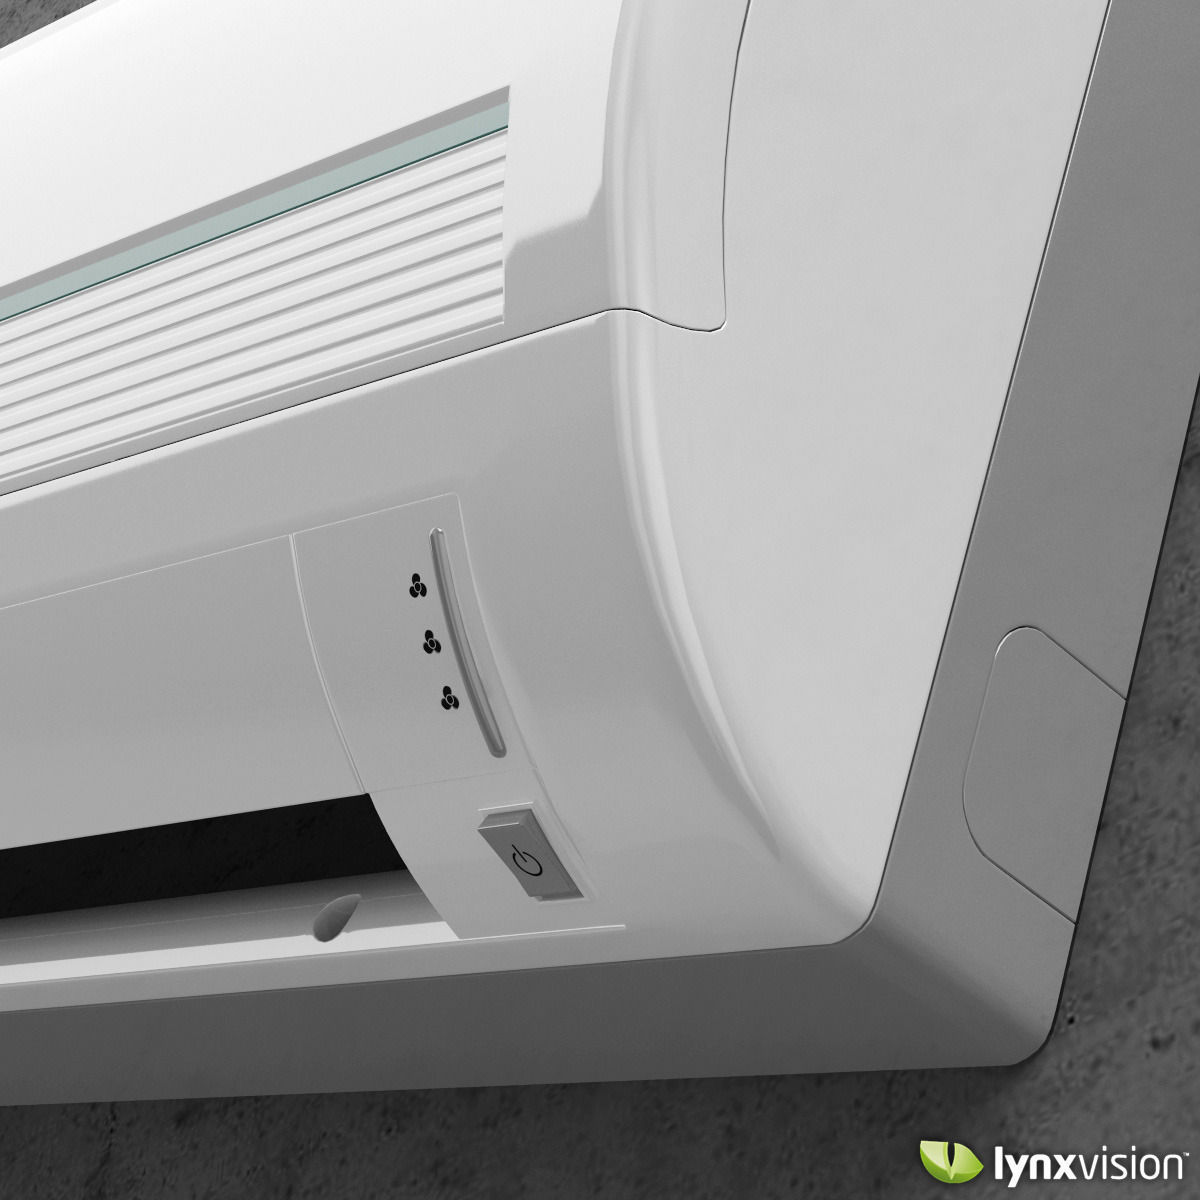 #7F9E2D Samsung Split Air Conditioner 3D Model MAX OBJ FBX C4D  Highest Rated 13926 Samsung Split Air Conditioner img with 1200x1200 px on helpvideos.info - Air Conditioners, Air Coolers and more